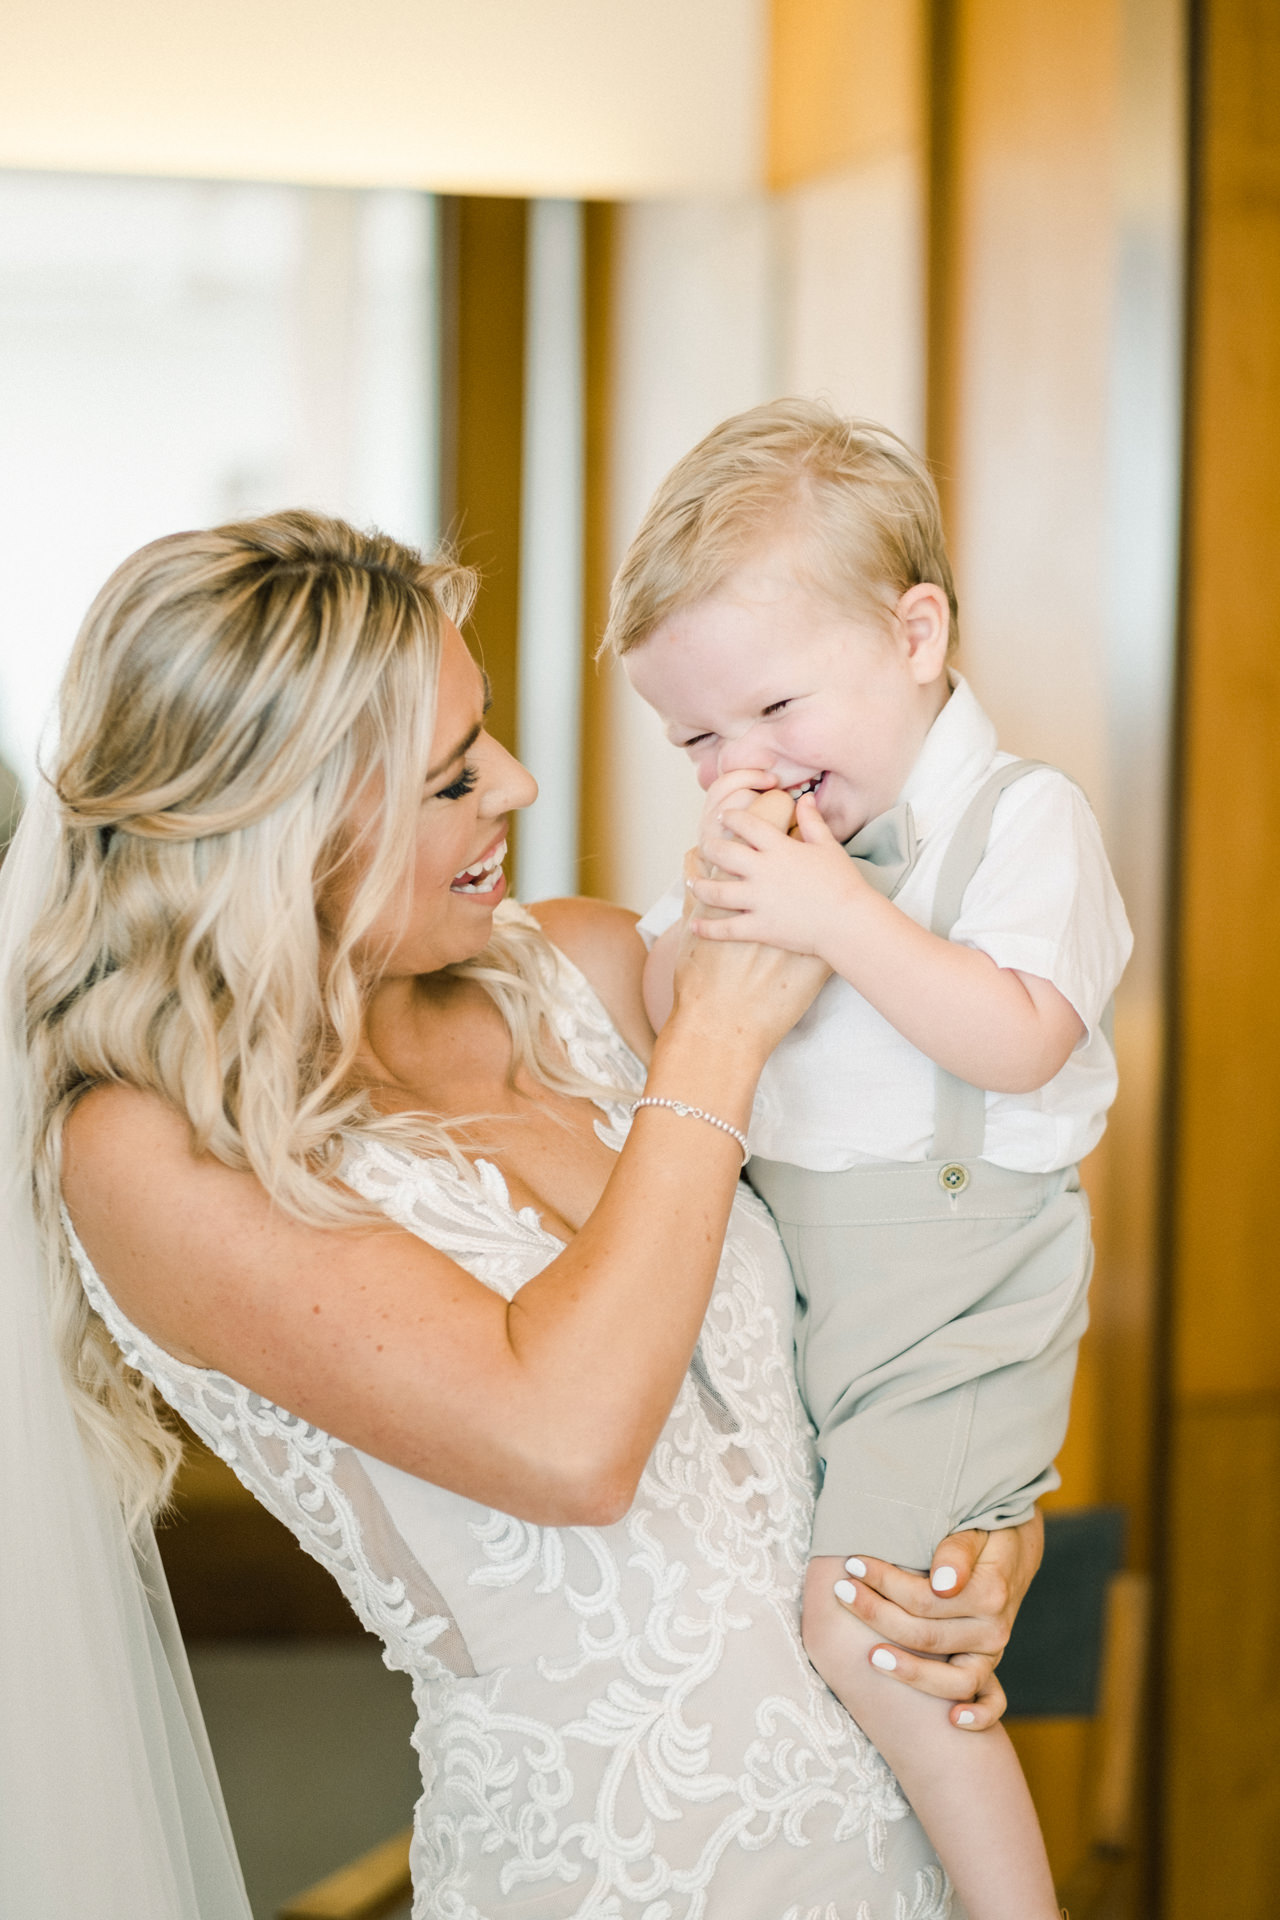 Brides With Son On The Wedding